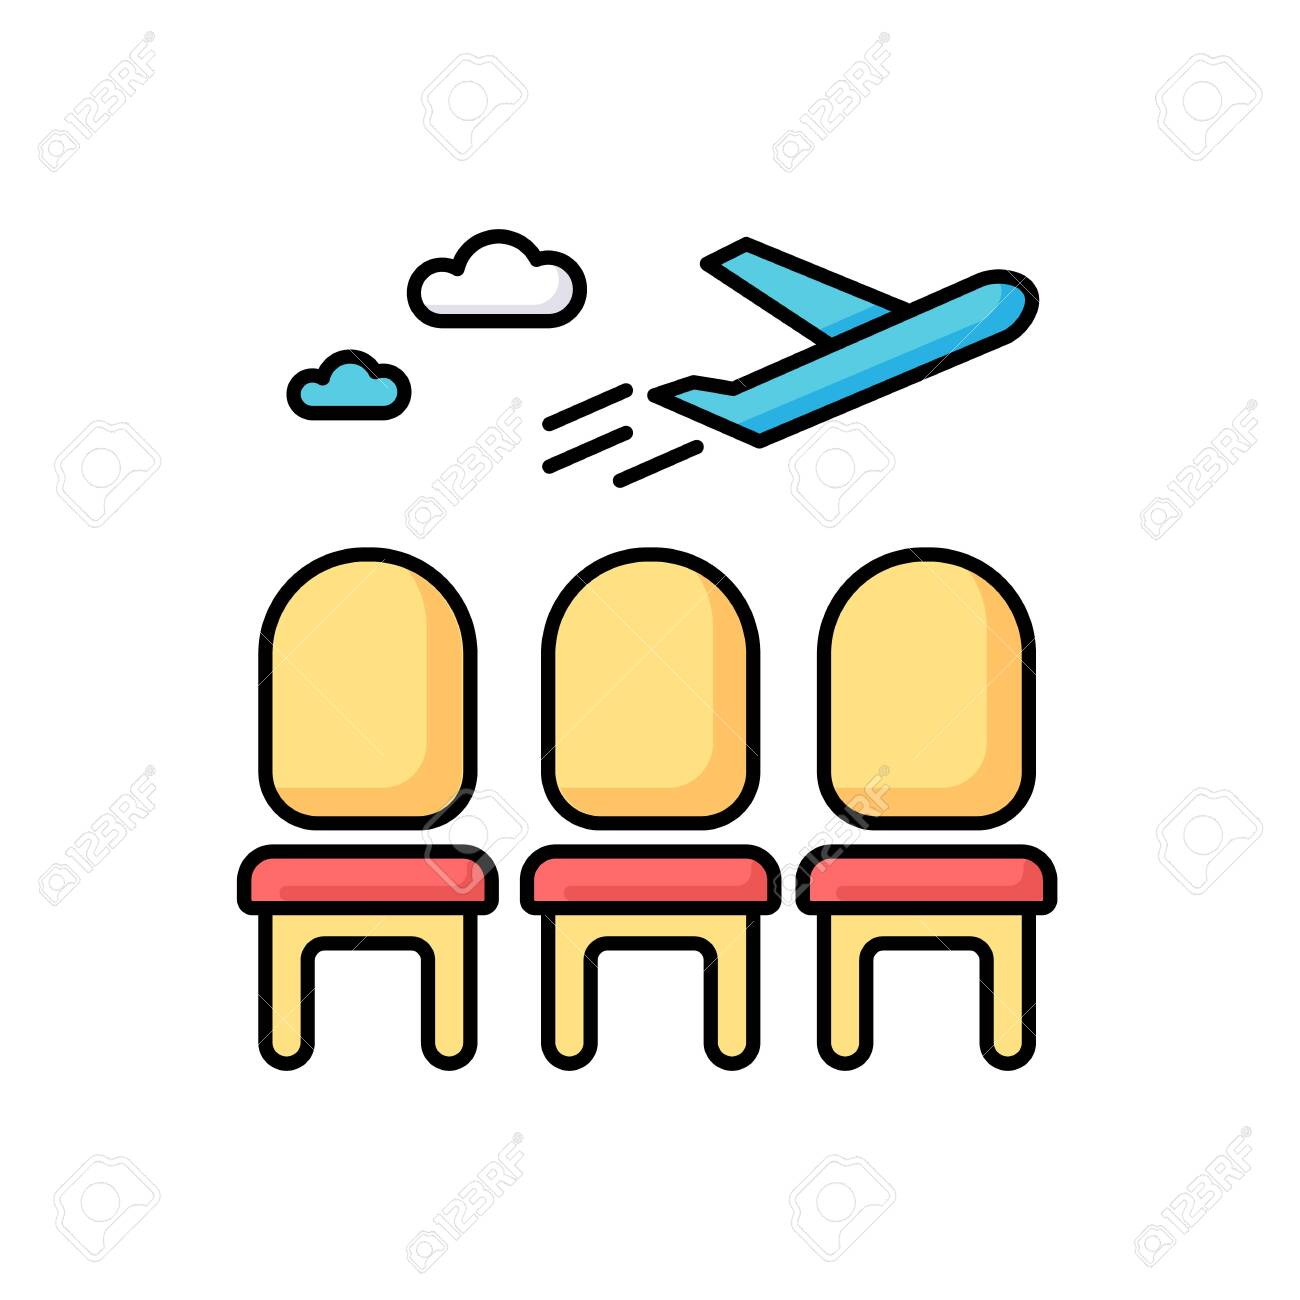 Airport Lounge Rgb Color Icon Waiting Lobby Before Airplane Royalty Free Cliparts Vectors And Stock Illustration Image 143161447